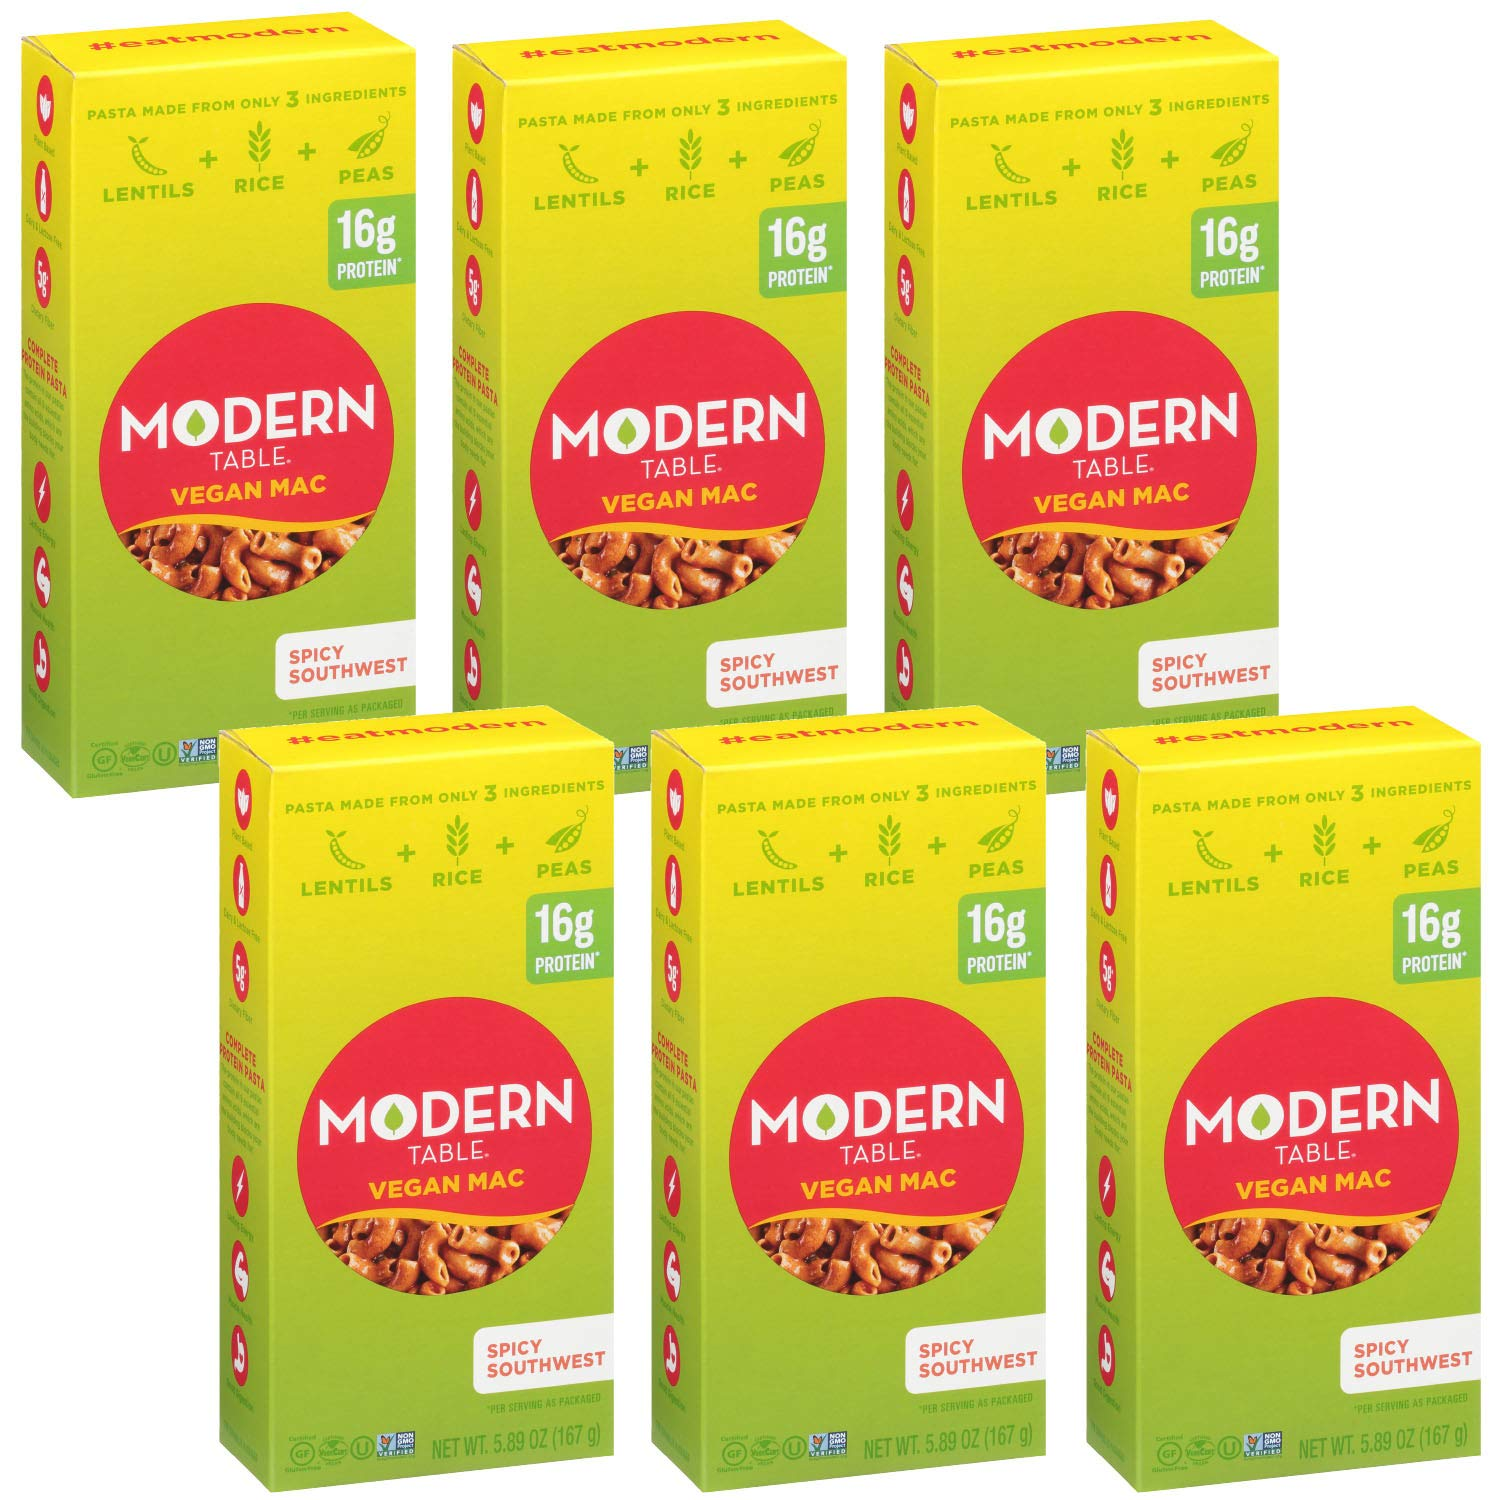 Modern Table Spicy Southwest Vegan Mac & Cheese, Complete Protein, 5.89 oz, 6 Count, Gluten Free, No Artificial Preservatives or Dyes, Certified Vegan